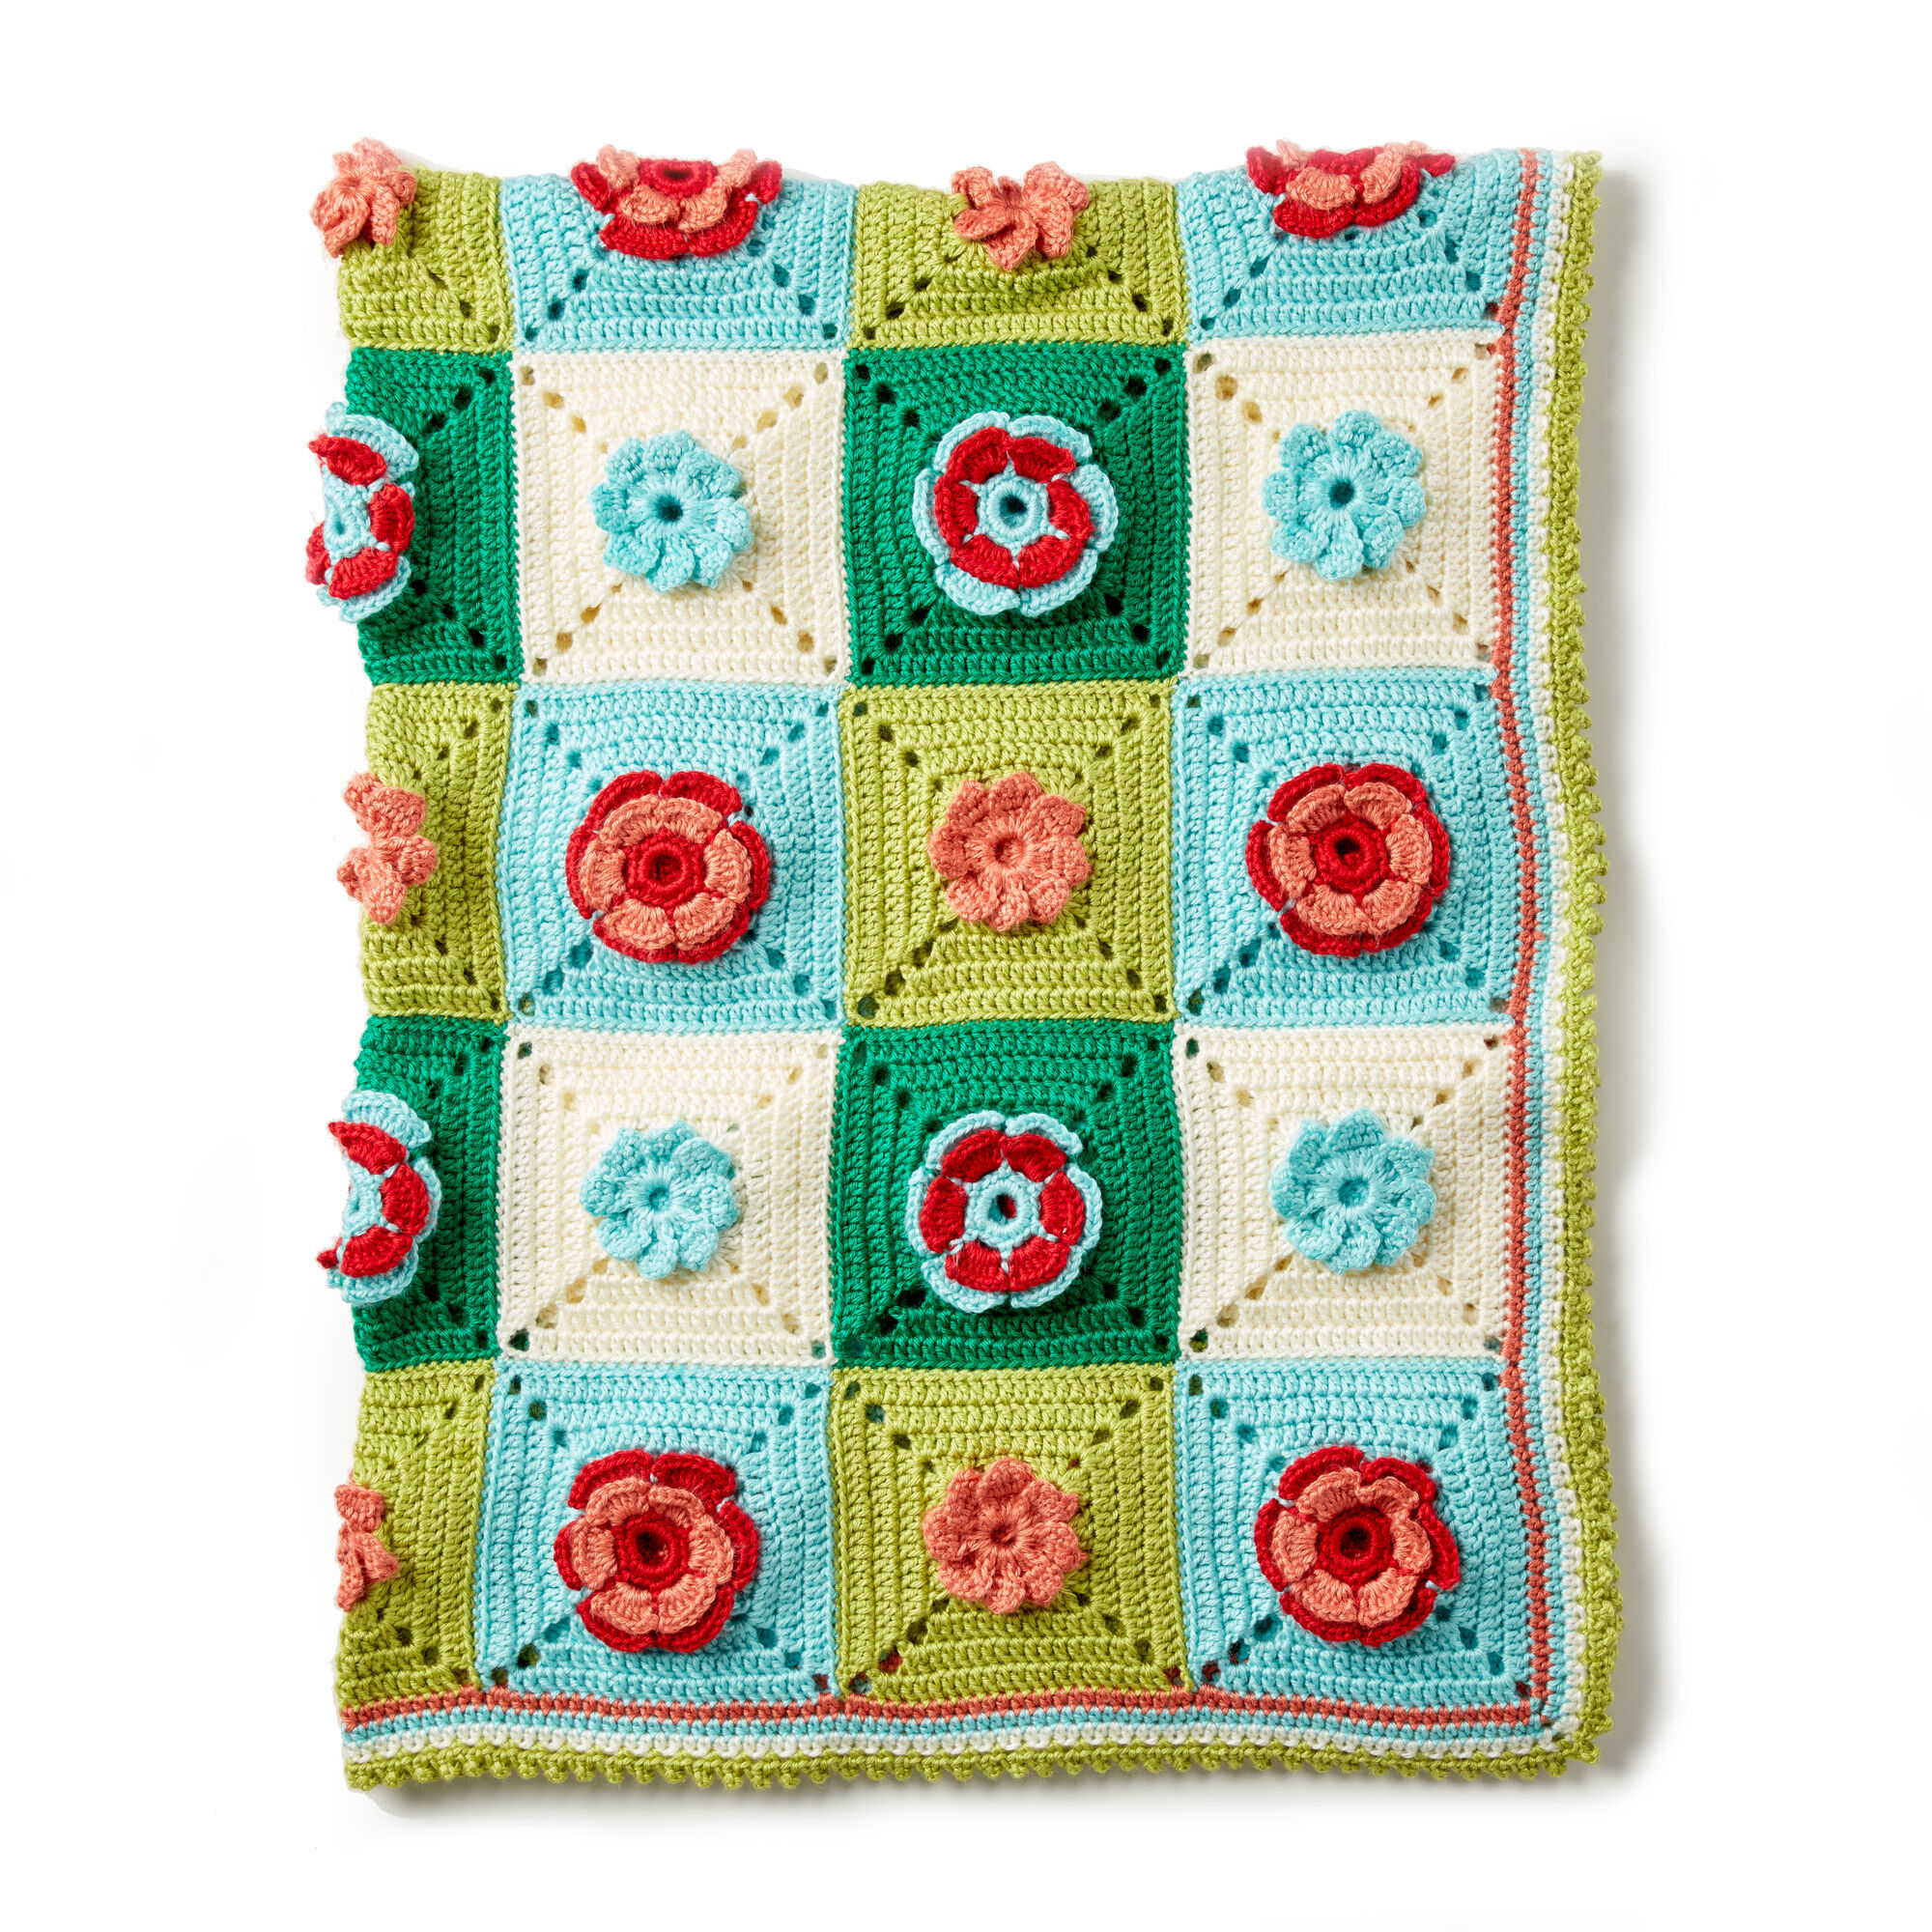 Caron Floral Granny Crochet Afghan, Version 1 Pattern | Yarnspirations